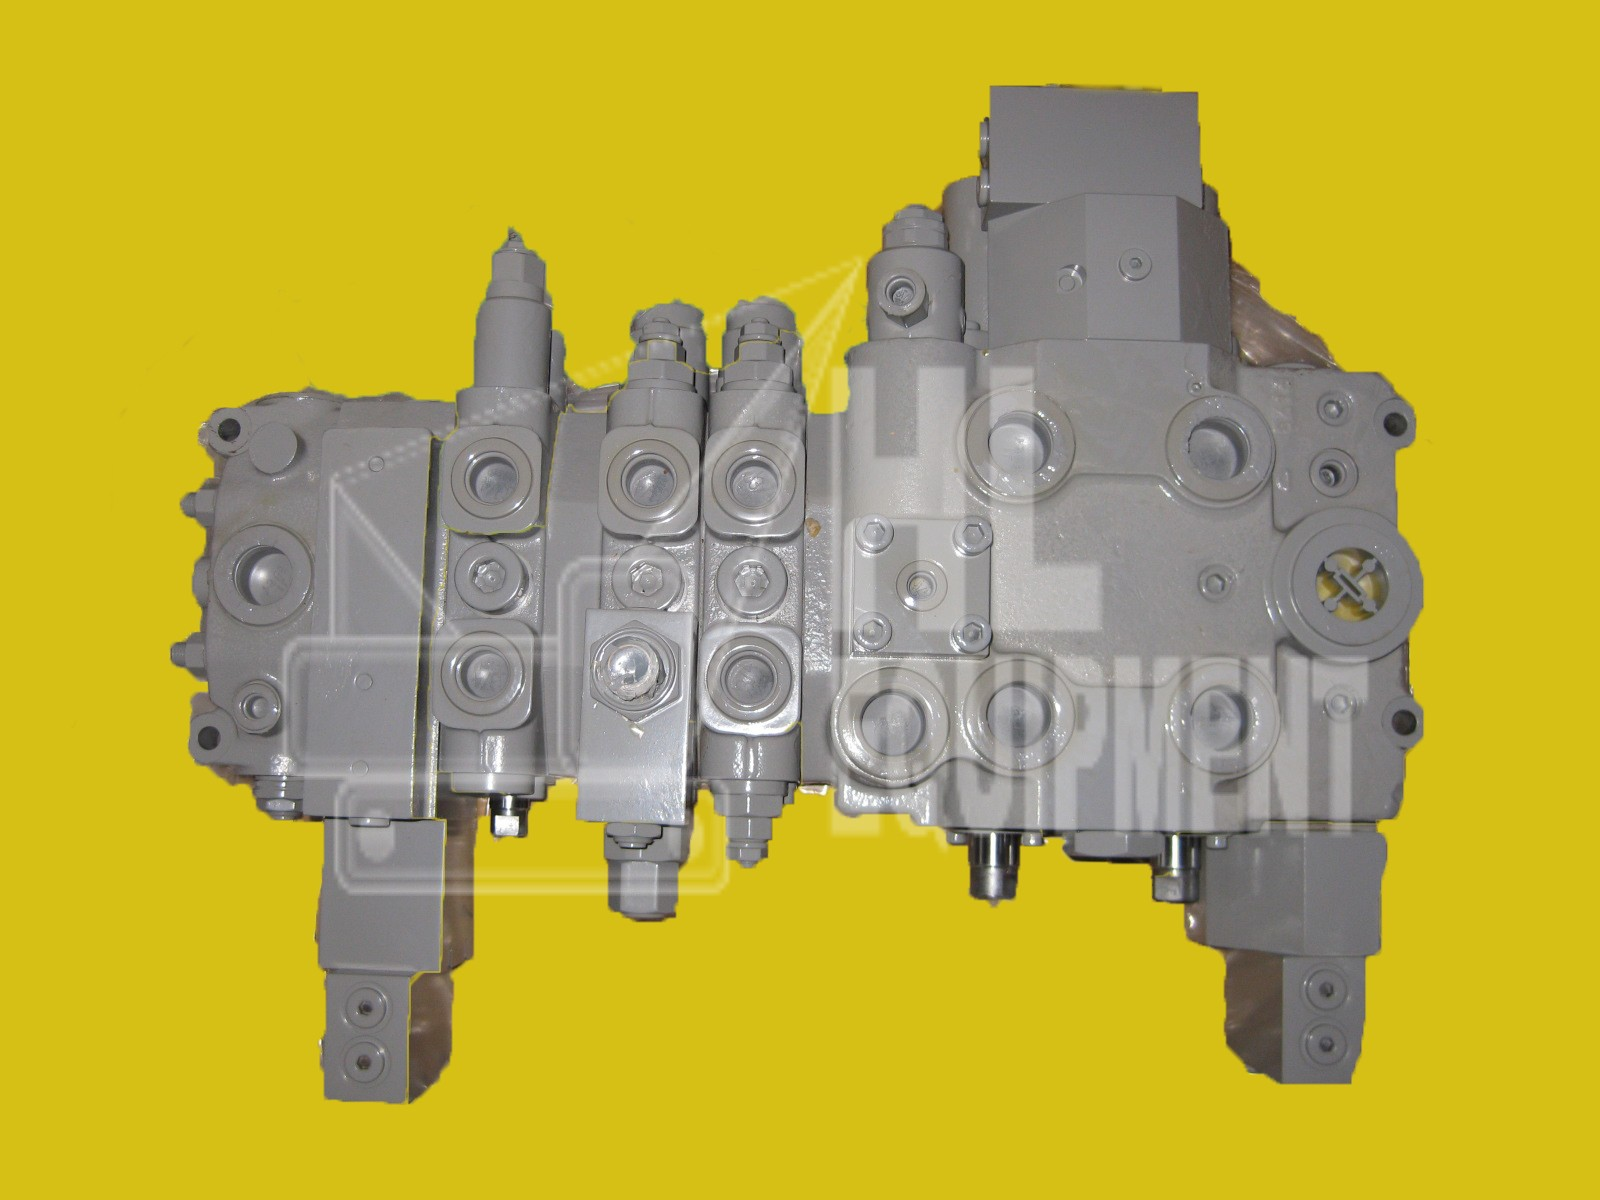 Hyd Control Valve Parts : Hydraulic valves crane spares parts hl equipment